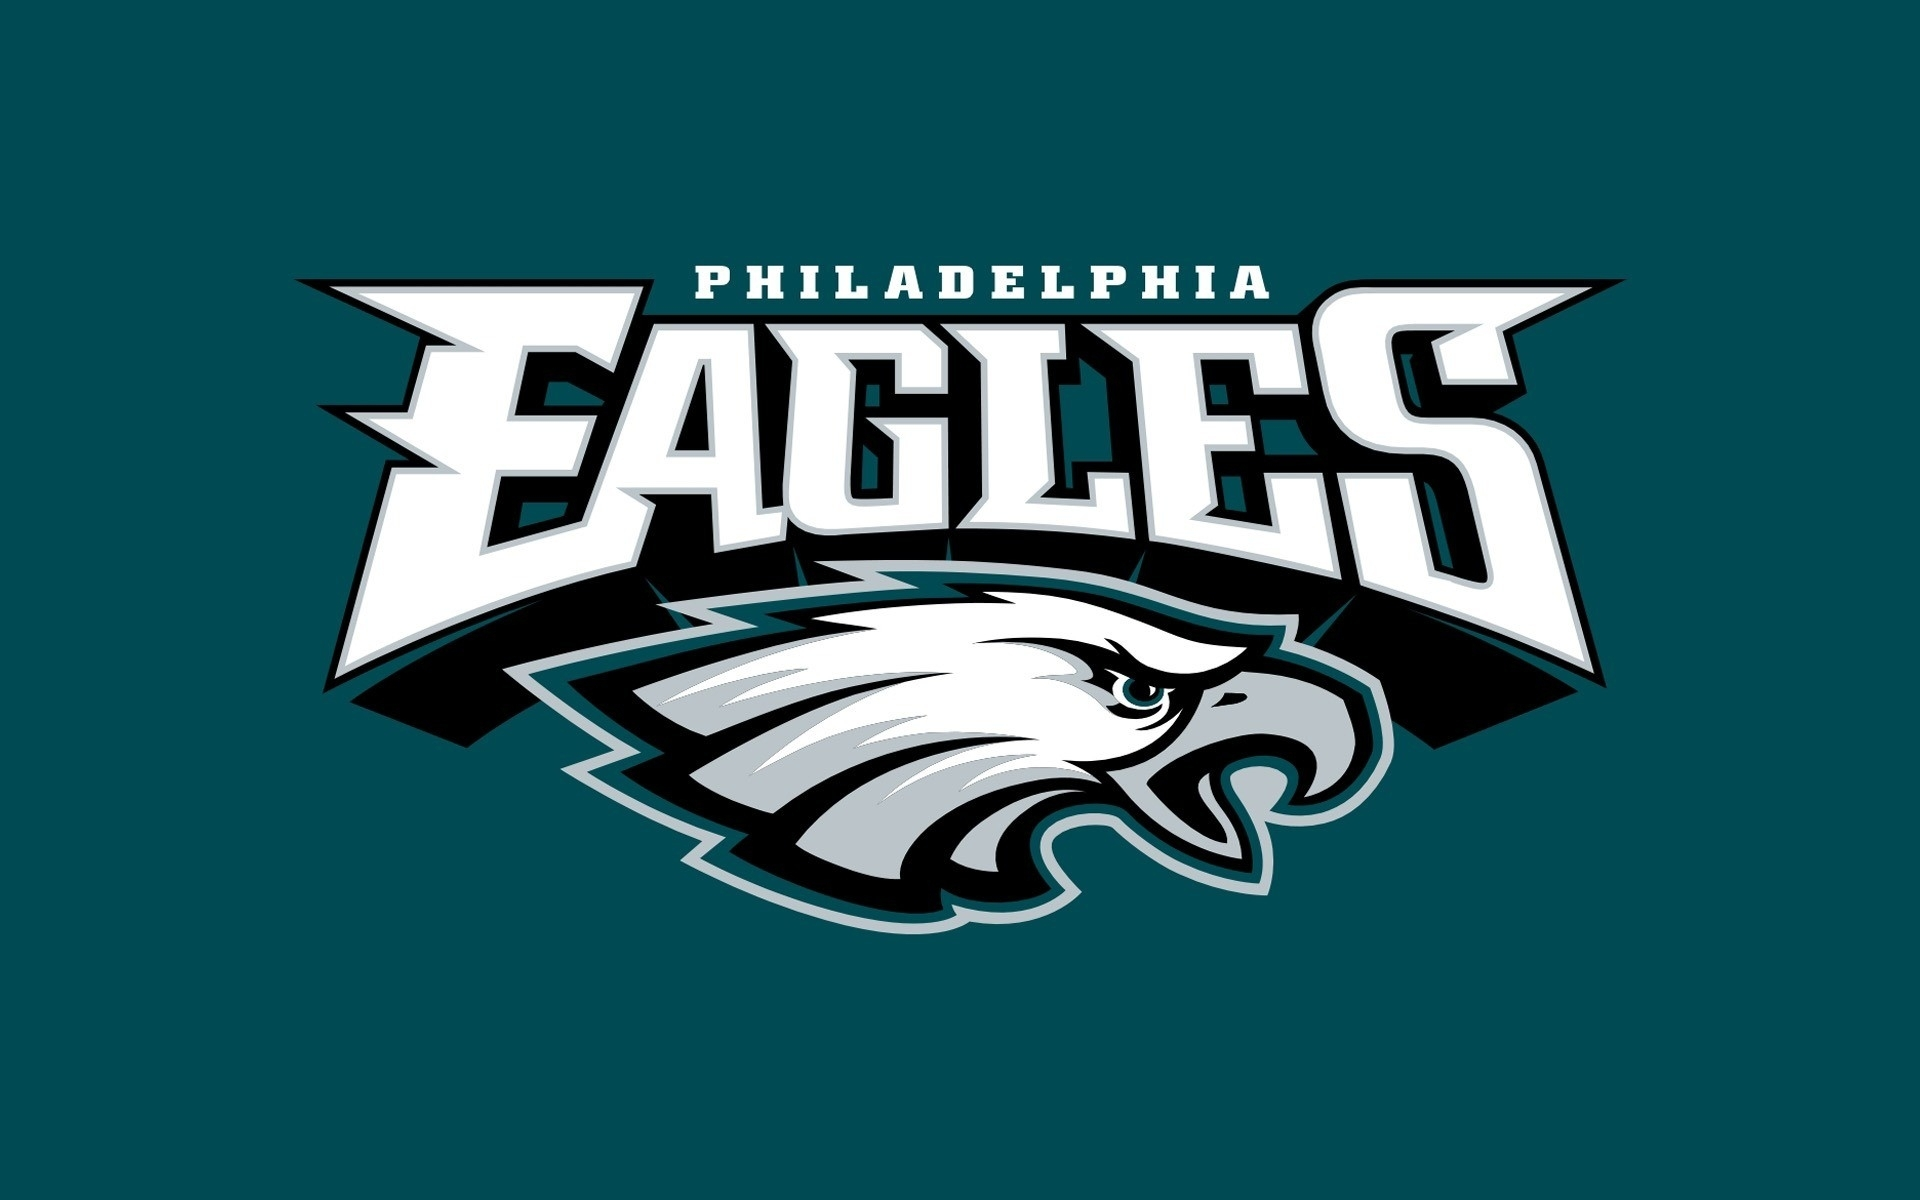 philadelphia eagles wallpaper hd - wallpaper.wiki